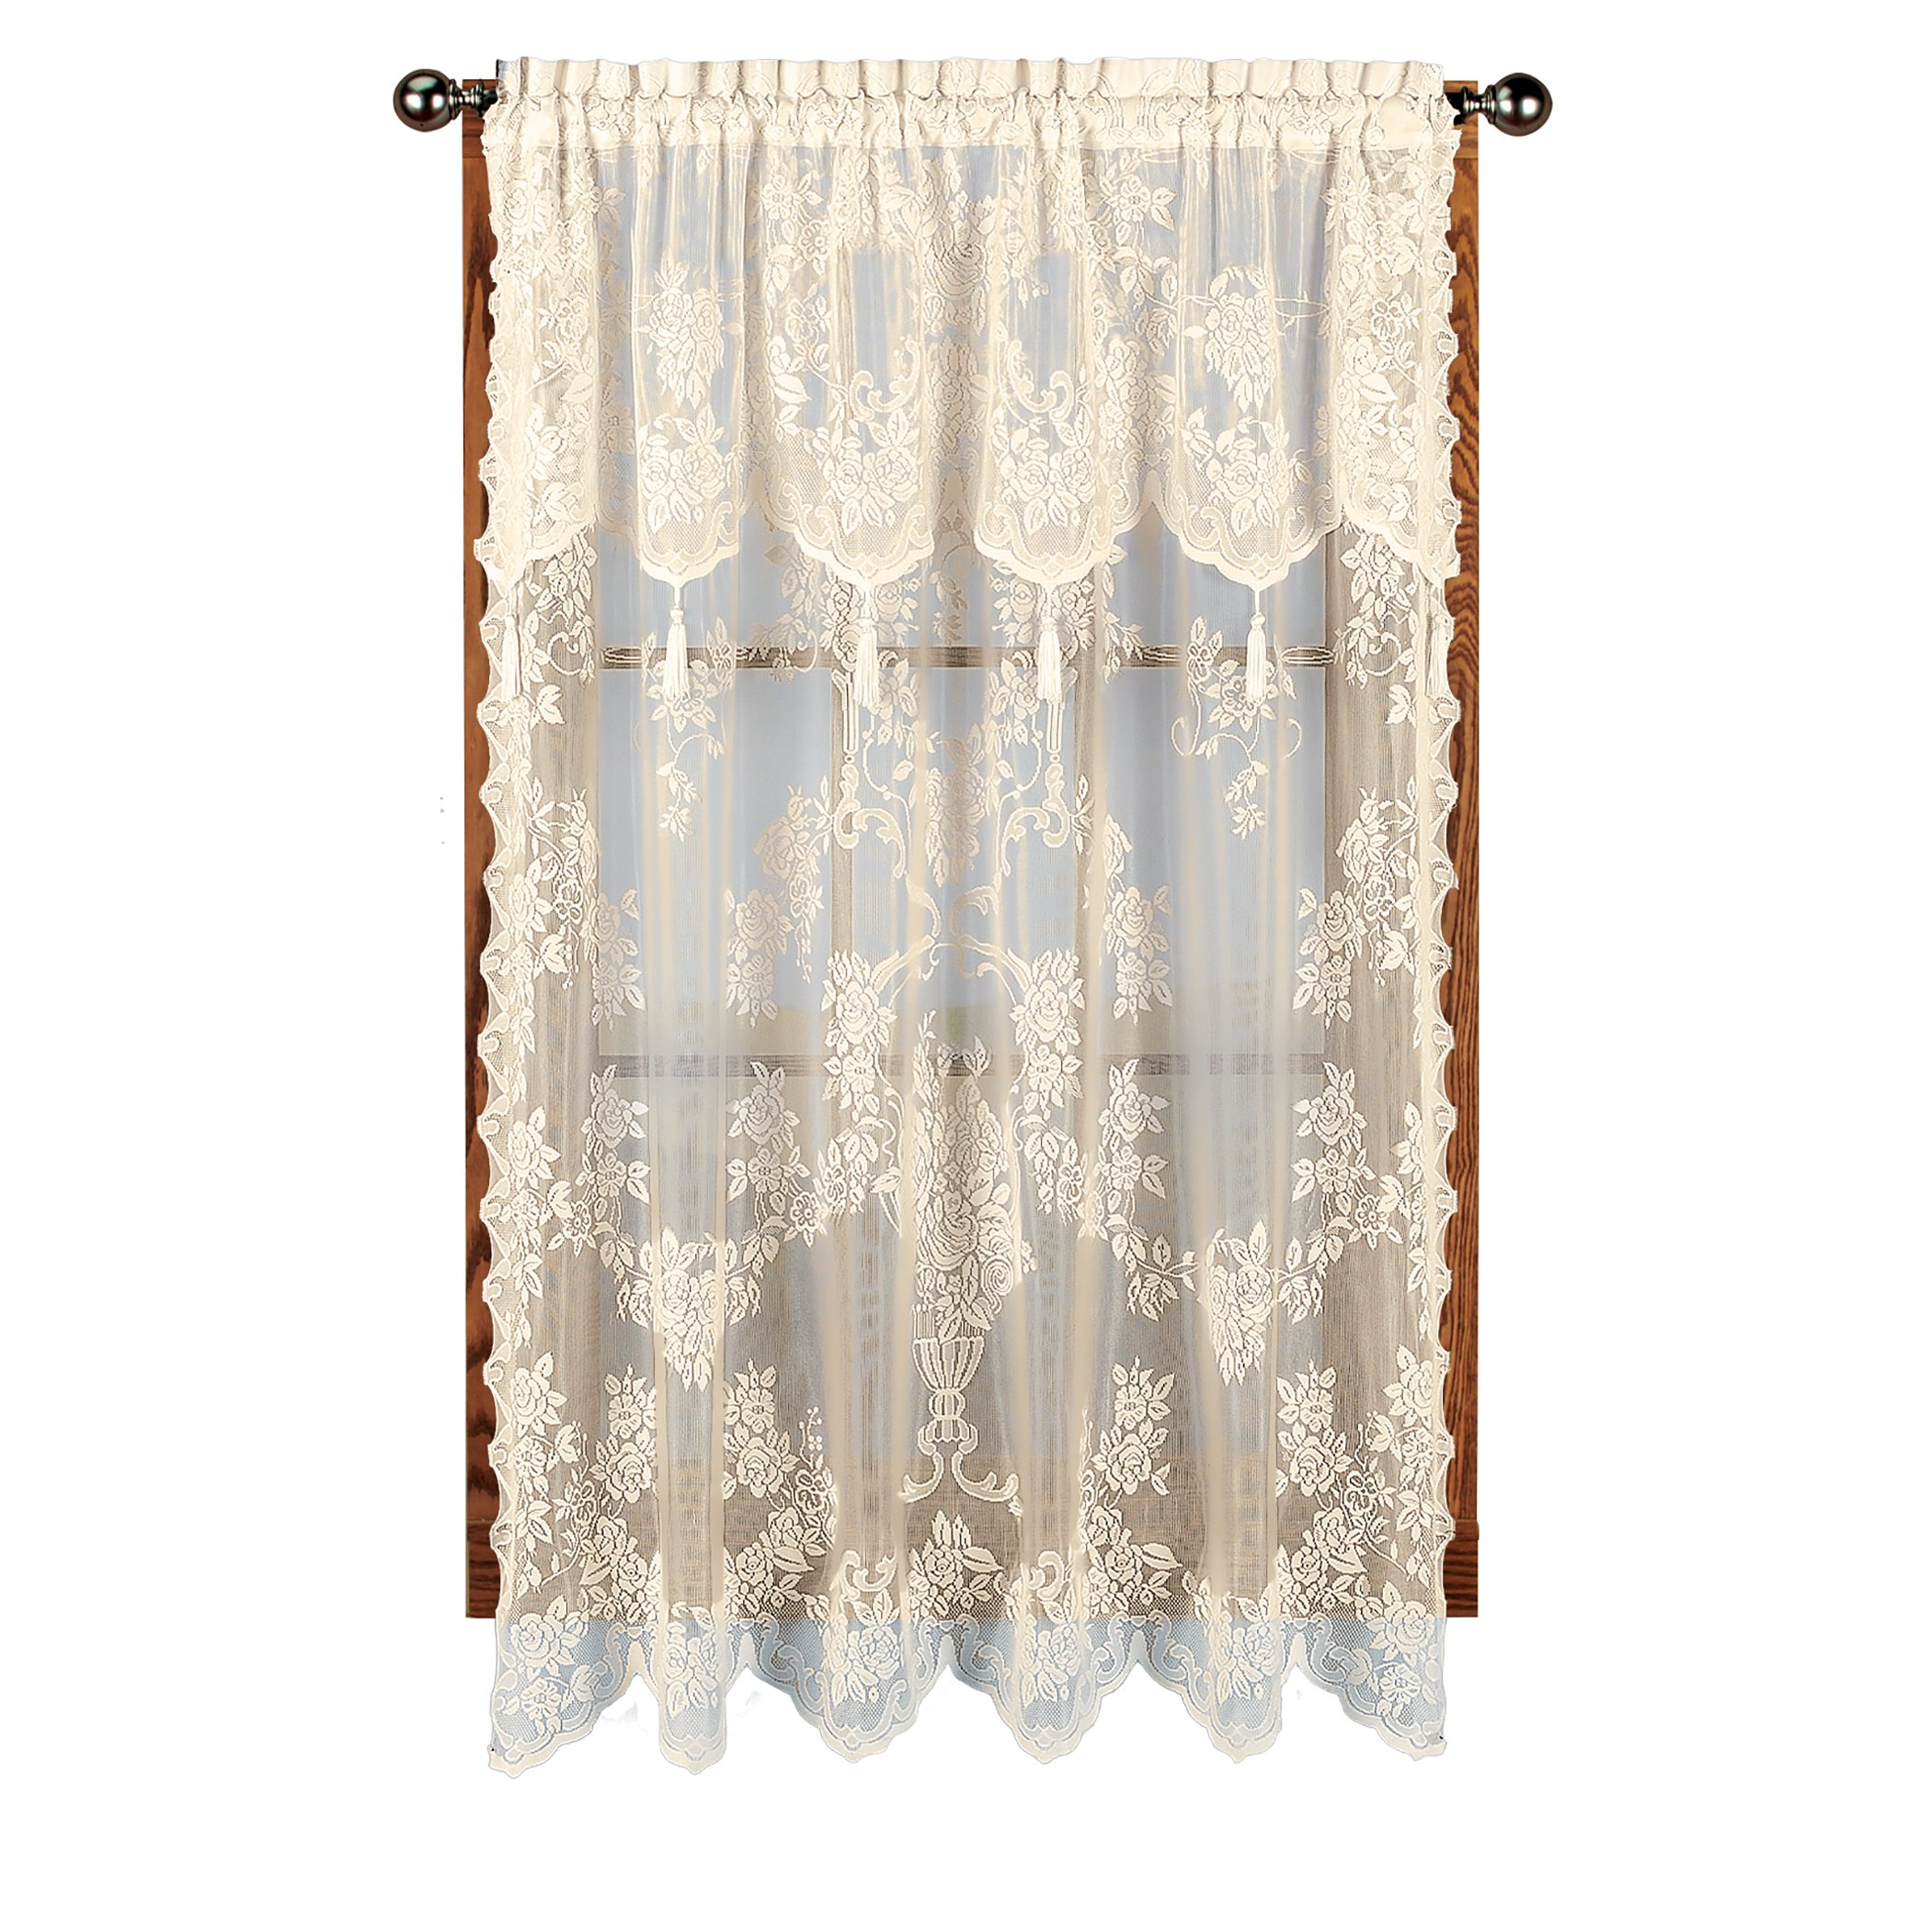 carly lace curtain panel with attached valance with tassels 63 long ecru bone